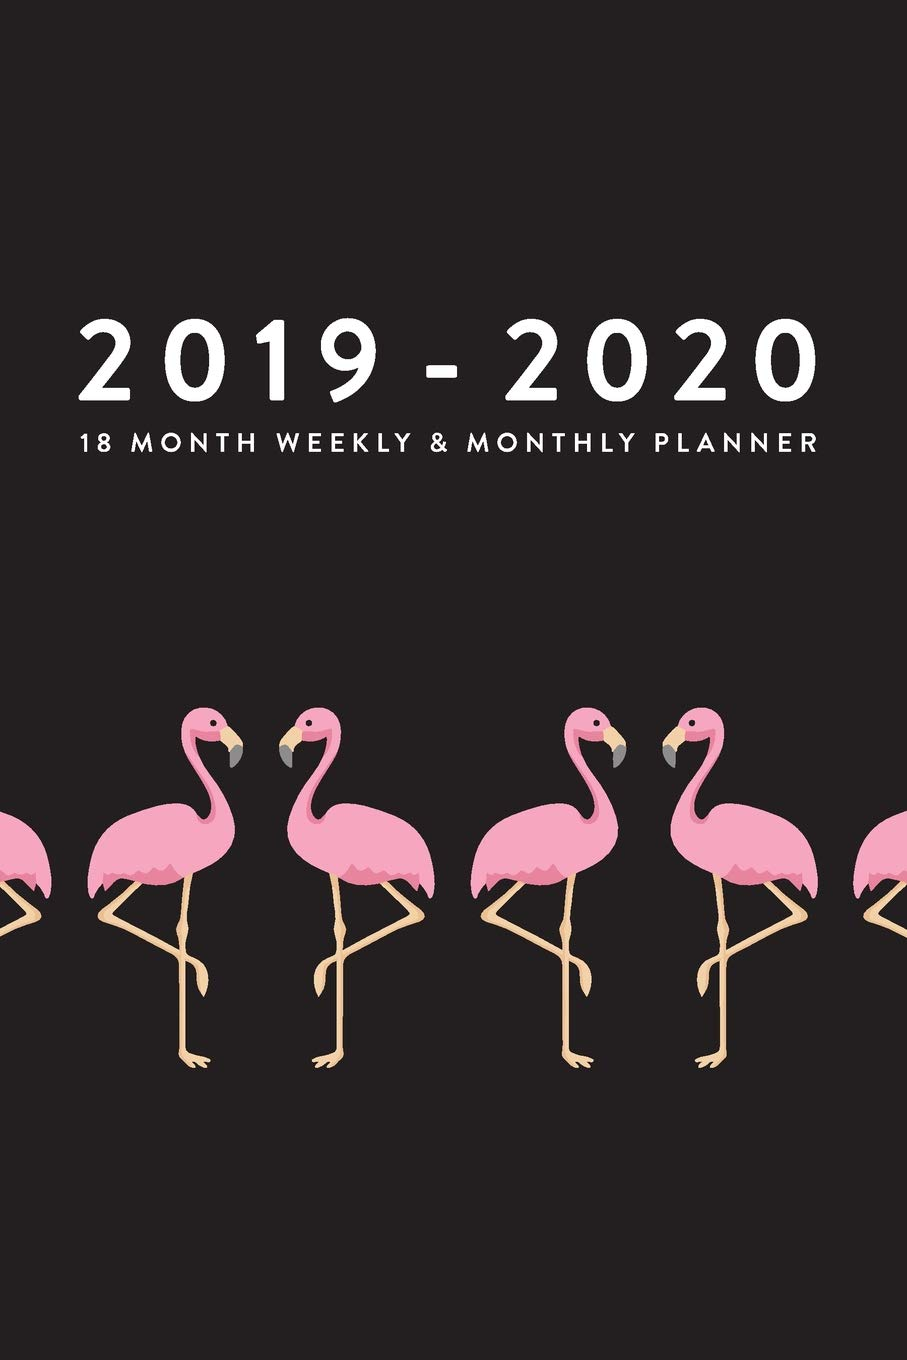 2019 - 2020, 18 Month Weekly & Monthly Planner: Flamingos ...